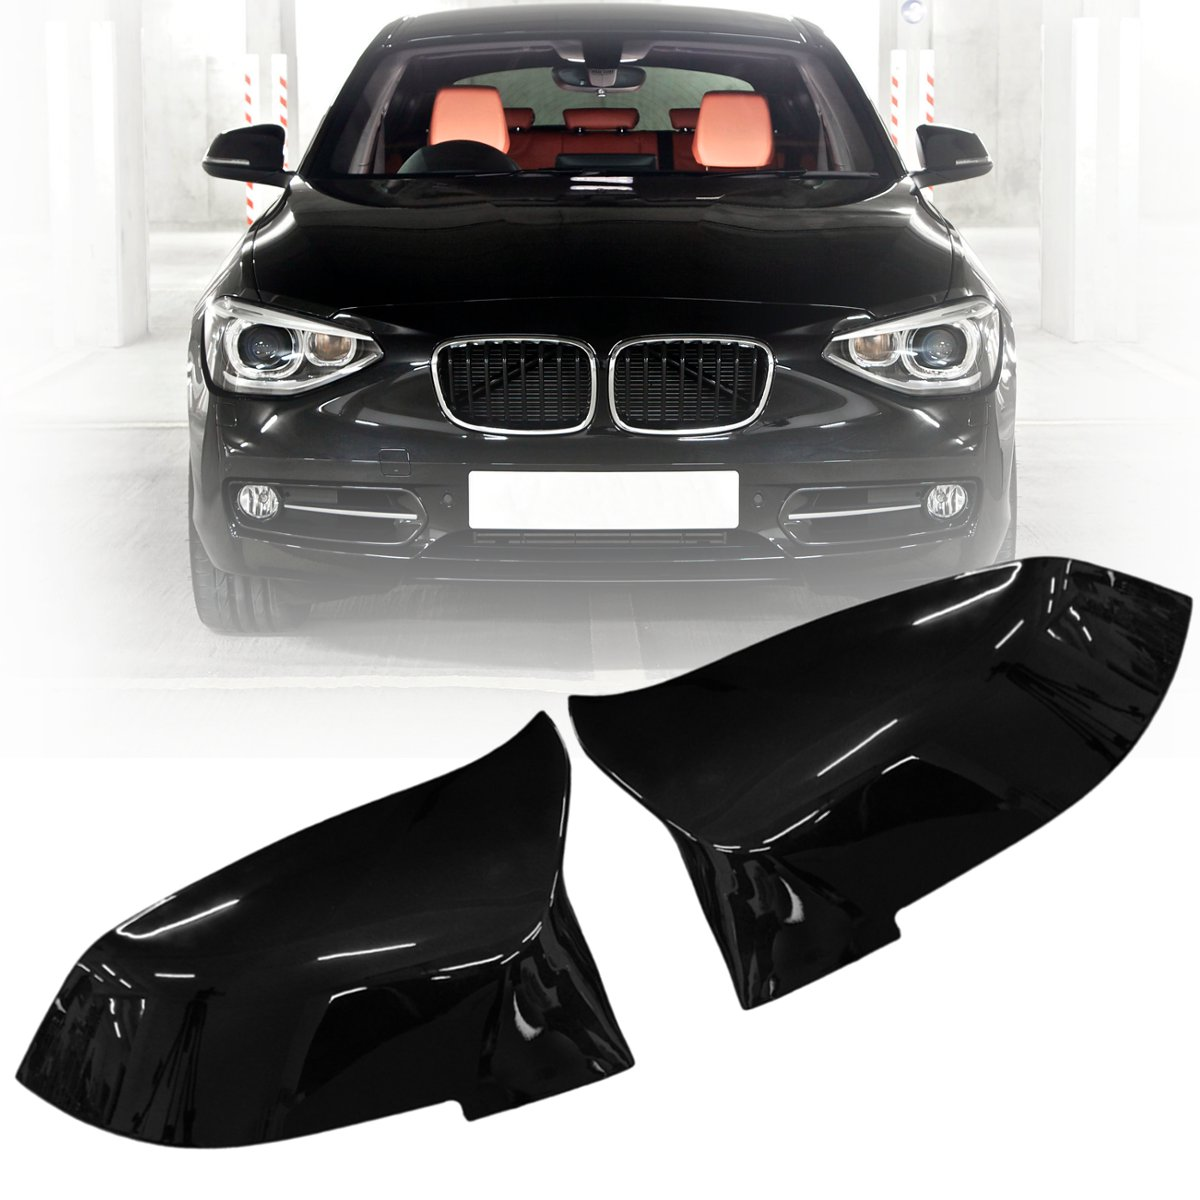 Pair Gloss Black Red Blue White Rearview Mirror Cover for BMW F20 F21 F22 F30 F32 F36 X1 F87 M3 2012 2013 2014 2015 2016 2017 2pcs car red black white rearview mirrors for honda civic 2012 2013 2014 accessories